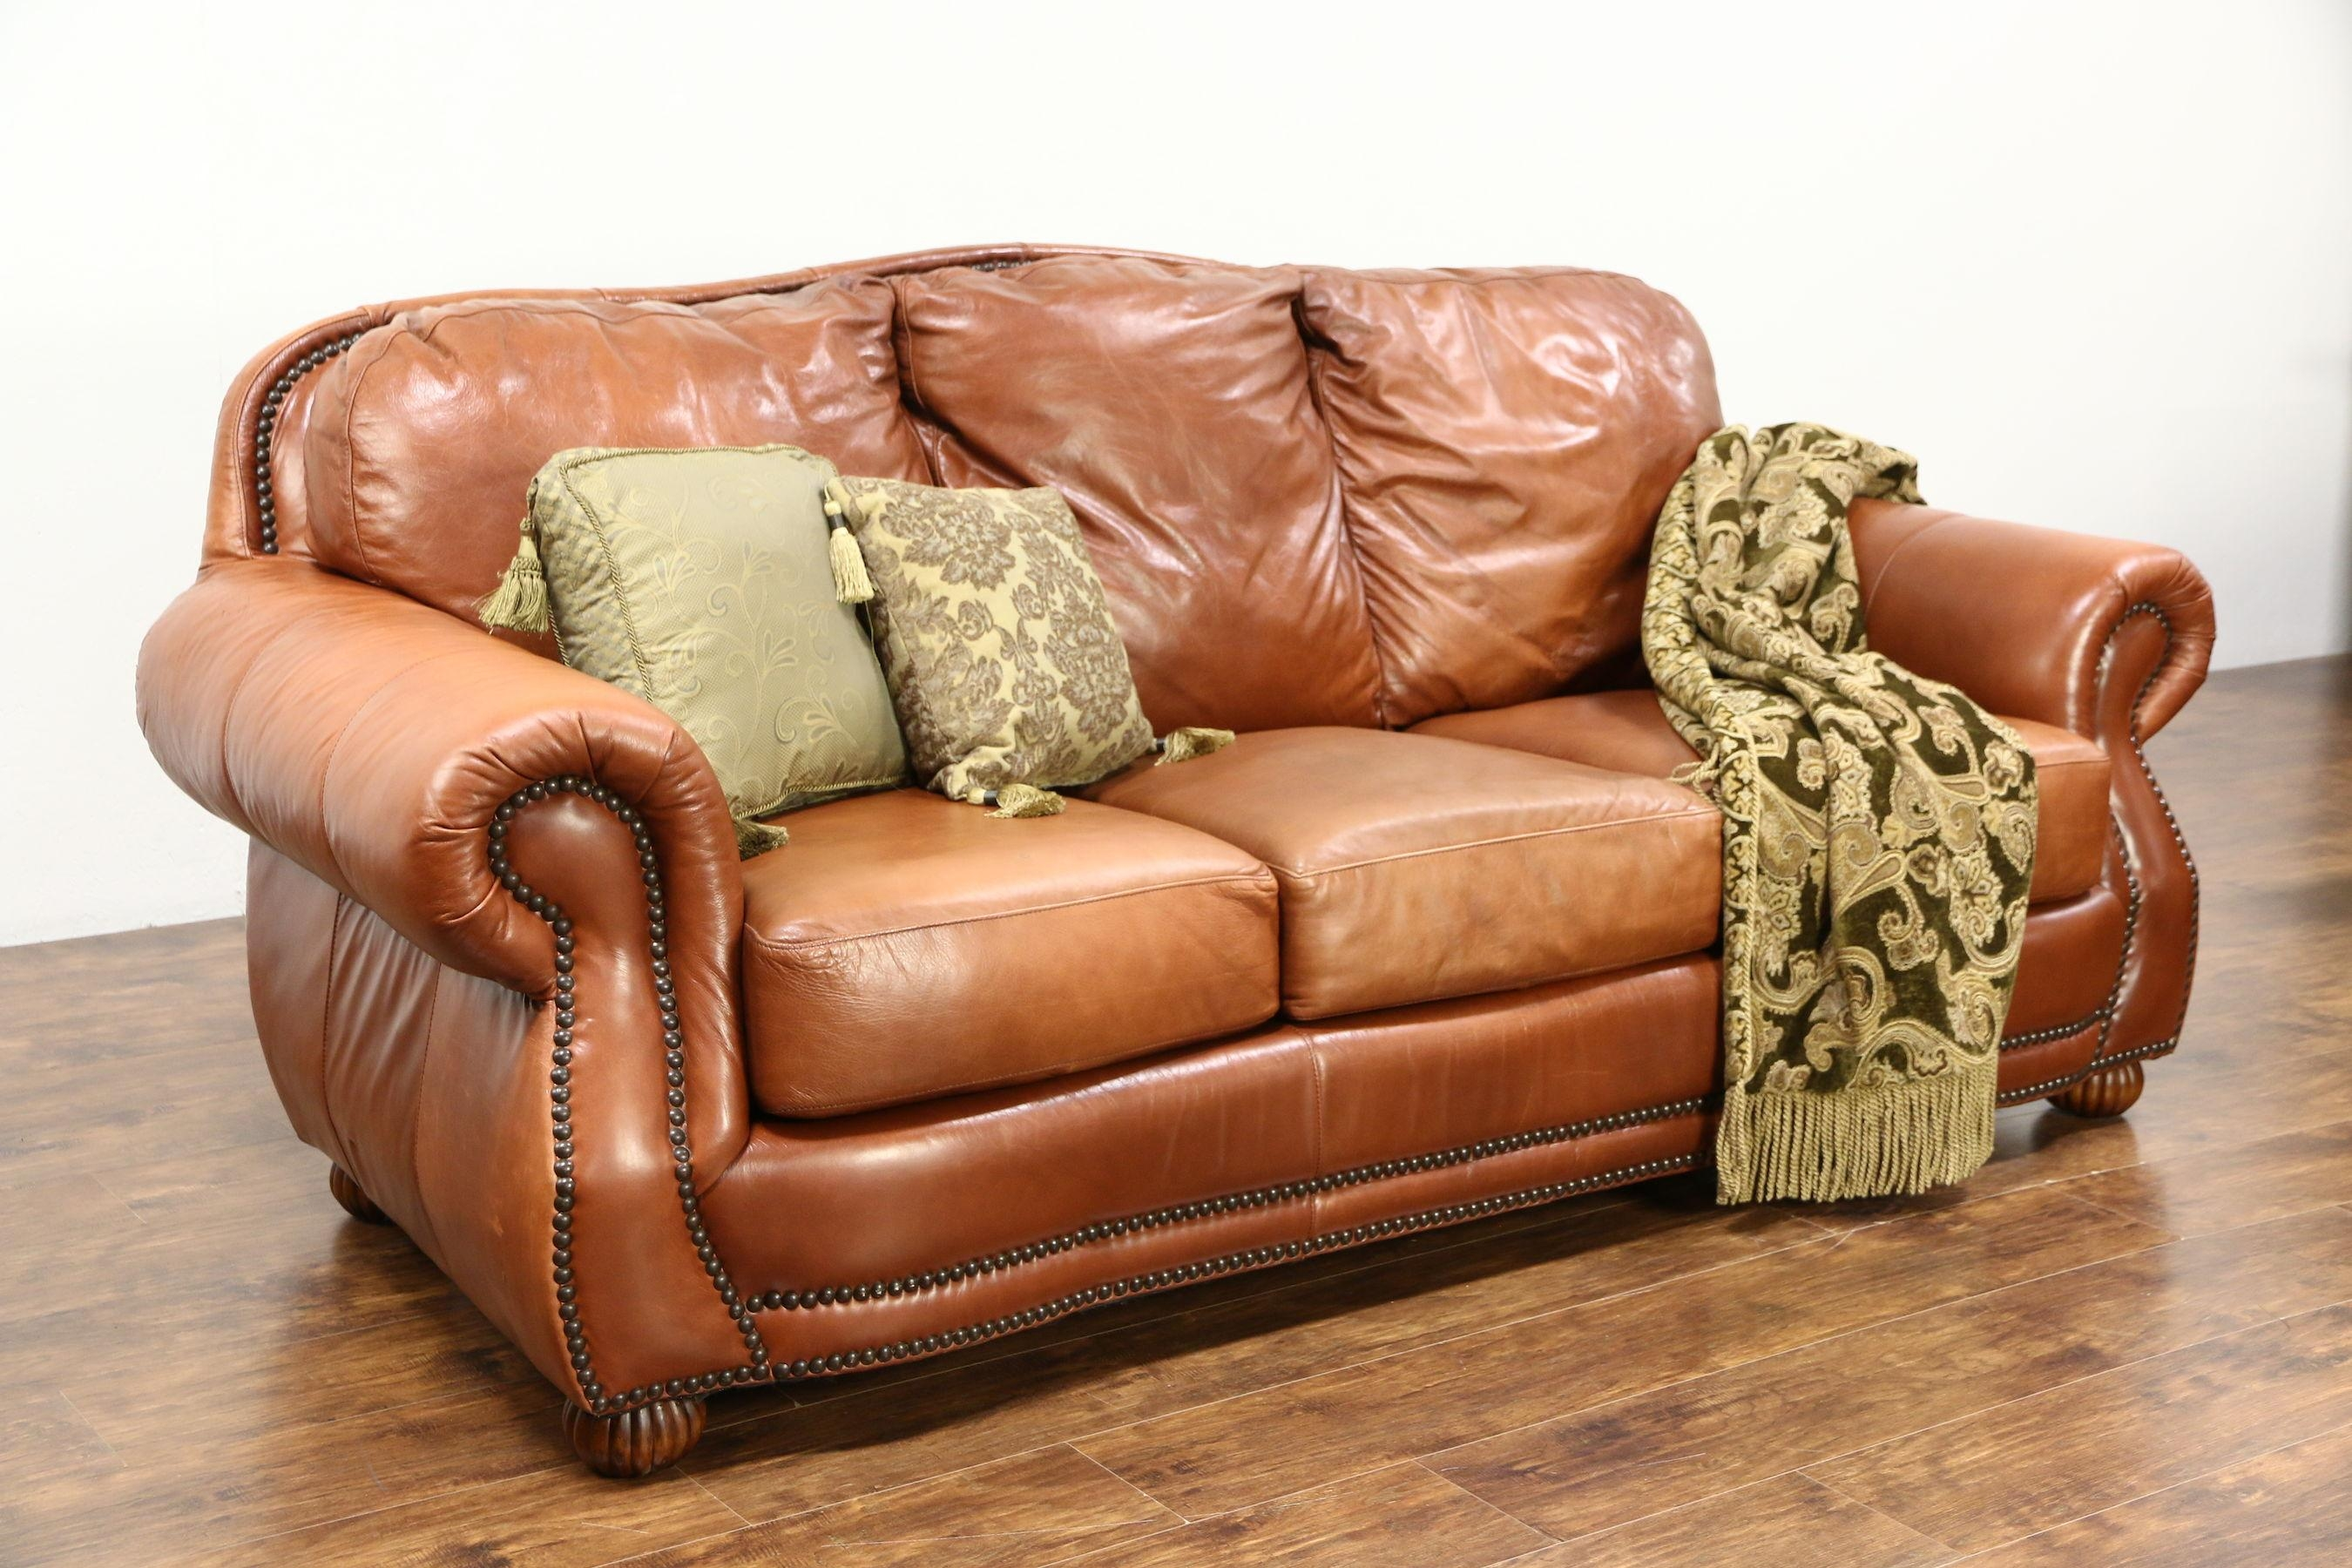 Sofas : Marvelous Vintage Leather Sofa Black Leather Sofa Set Throughout Vintage Leather Sectional Sofas (Photo 11 of 20)